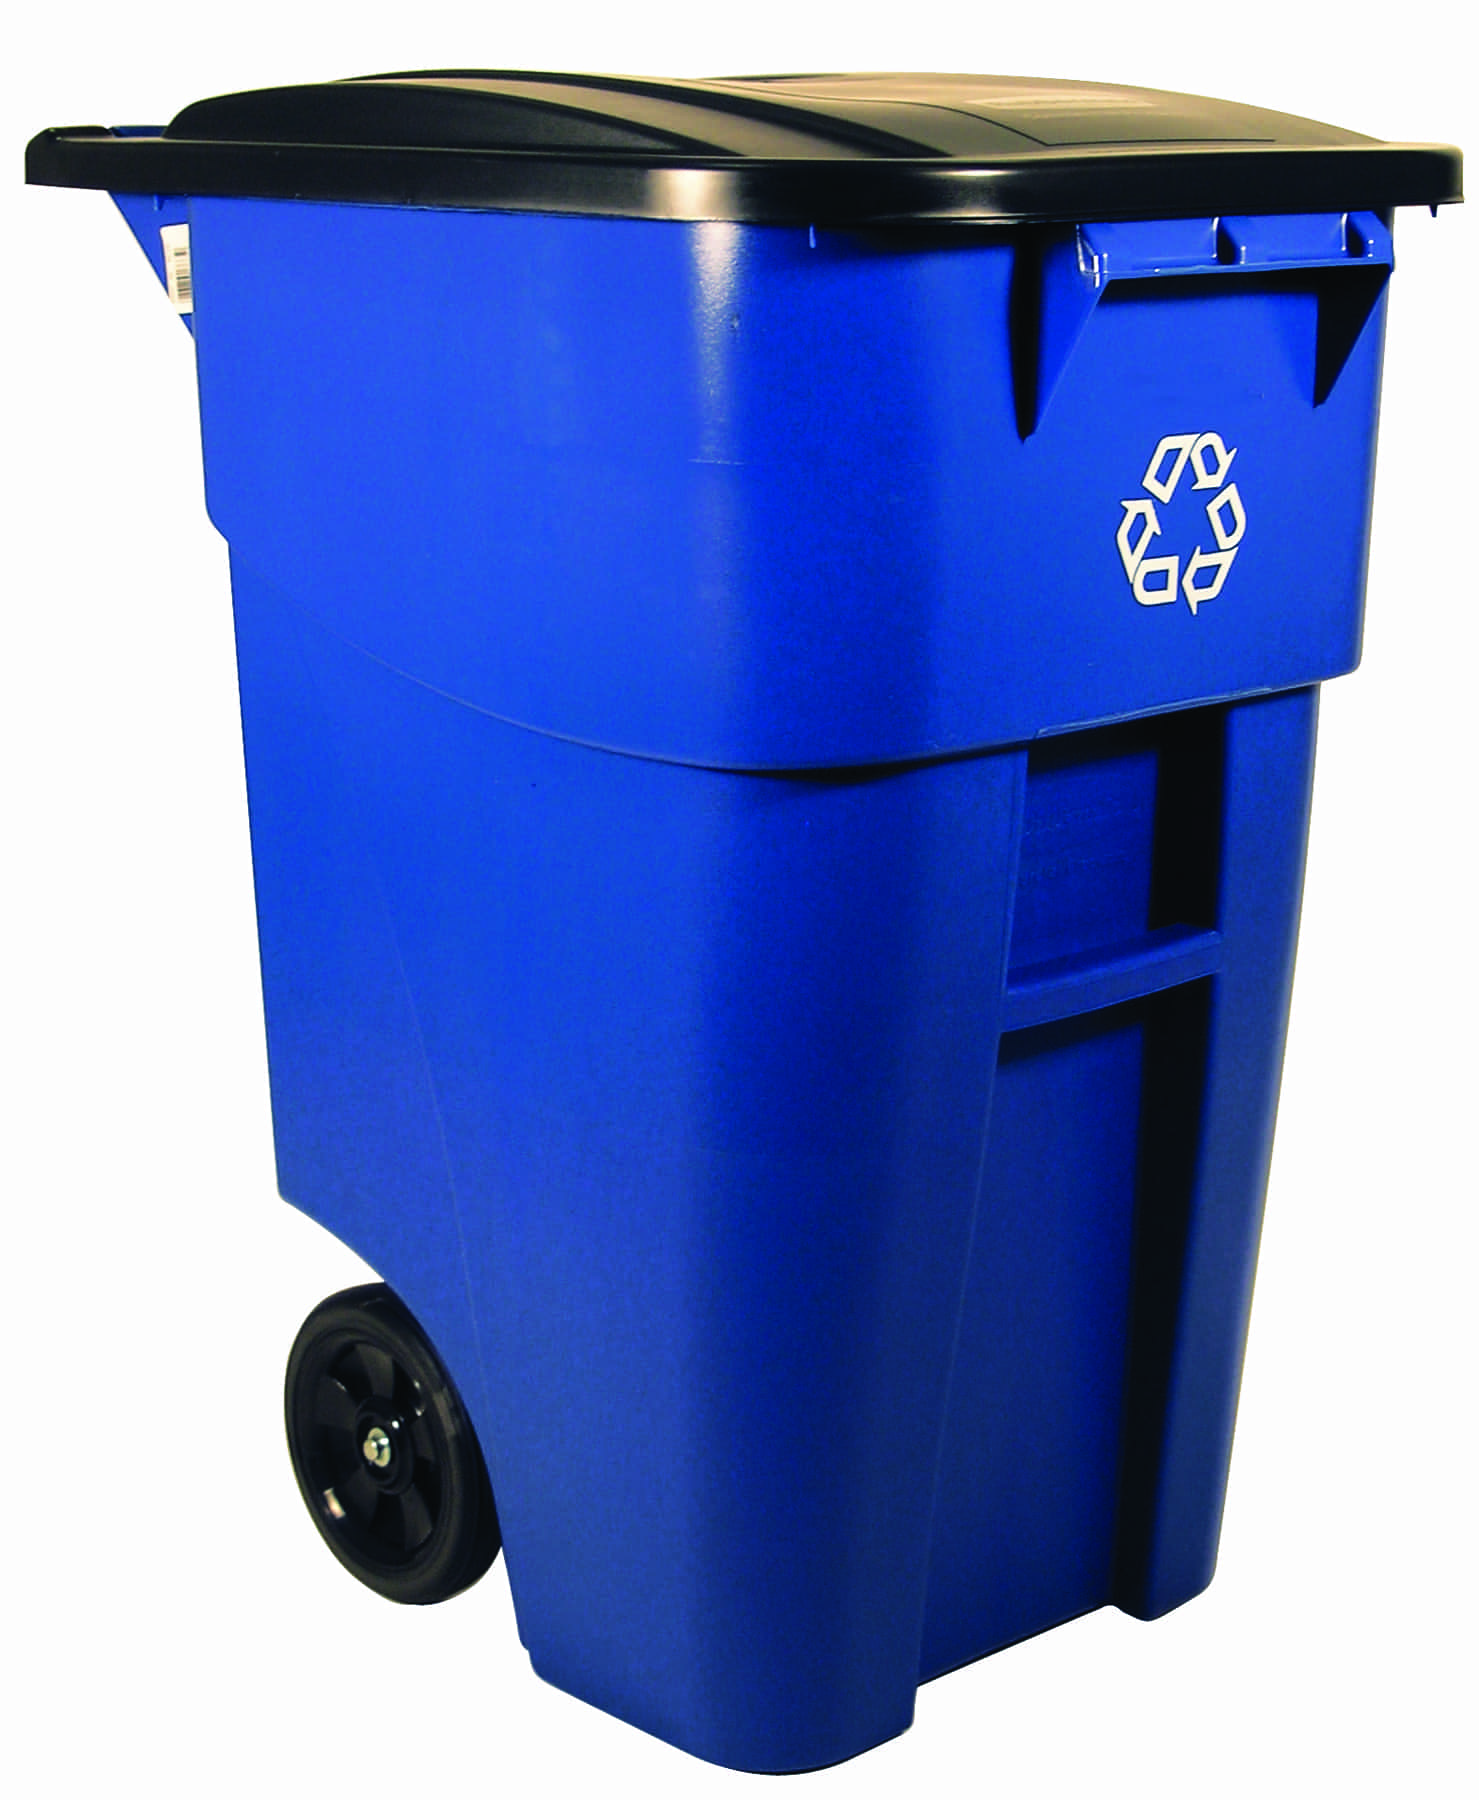 50 gallon brute recycling rollout container with lid for sale 9w27 73 recycle away. Black Bedroom Furniture Sets. Home Design Ideas